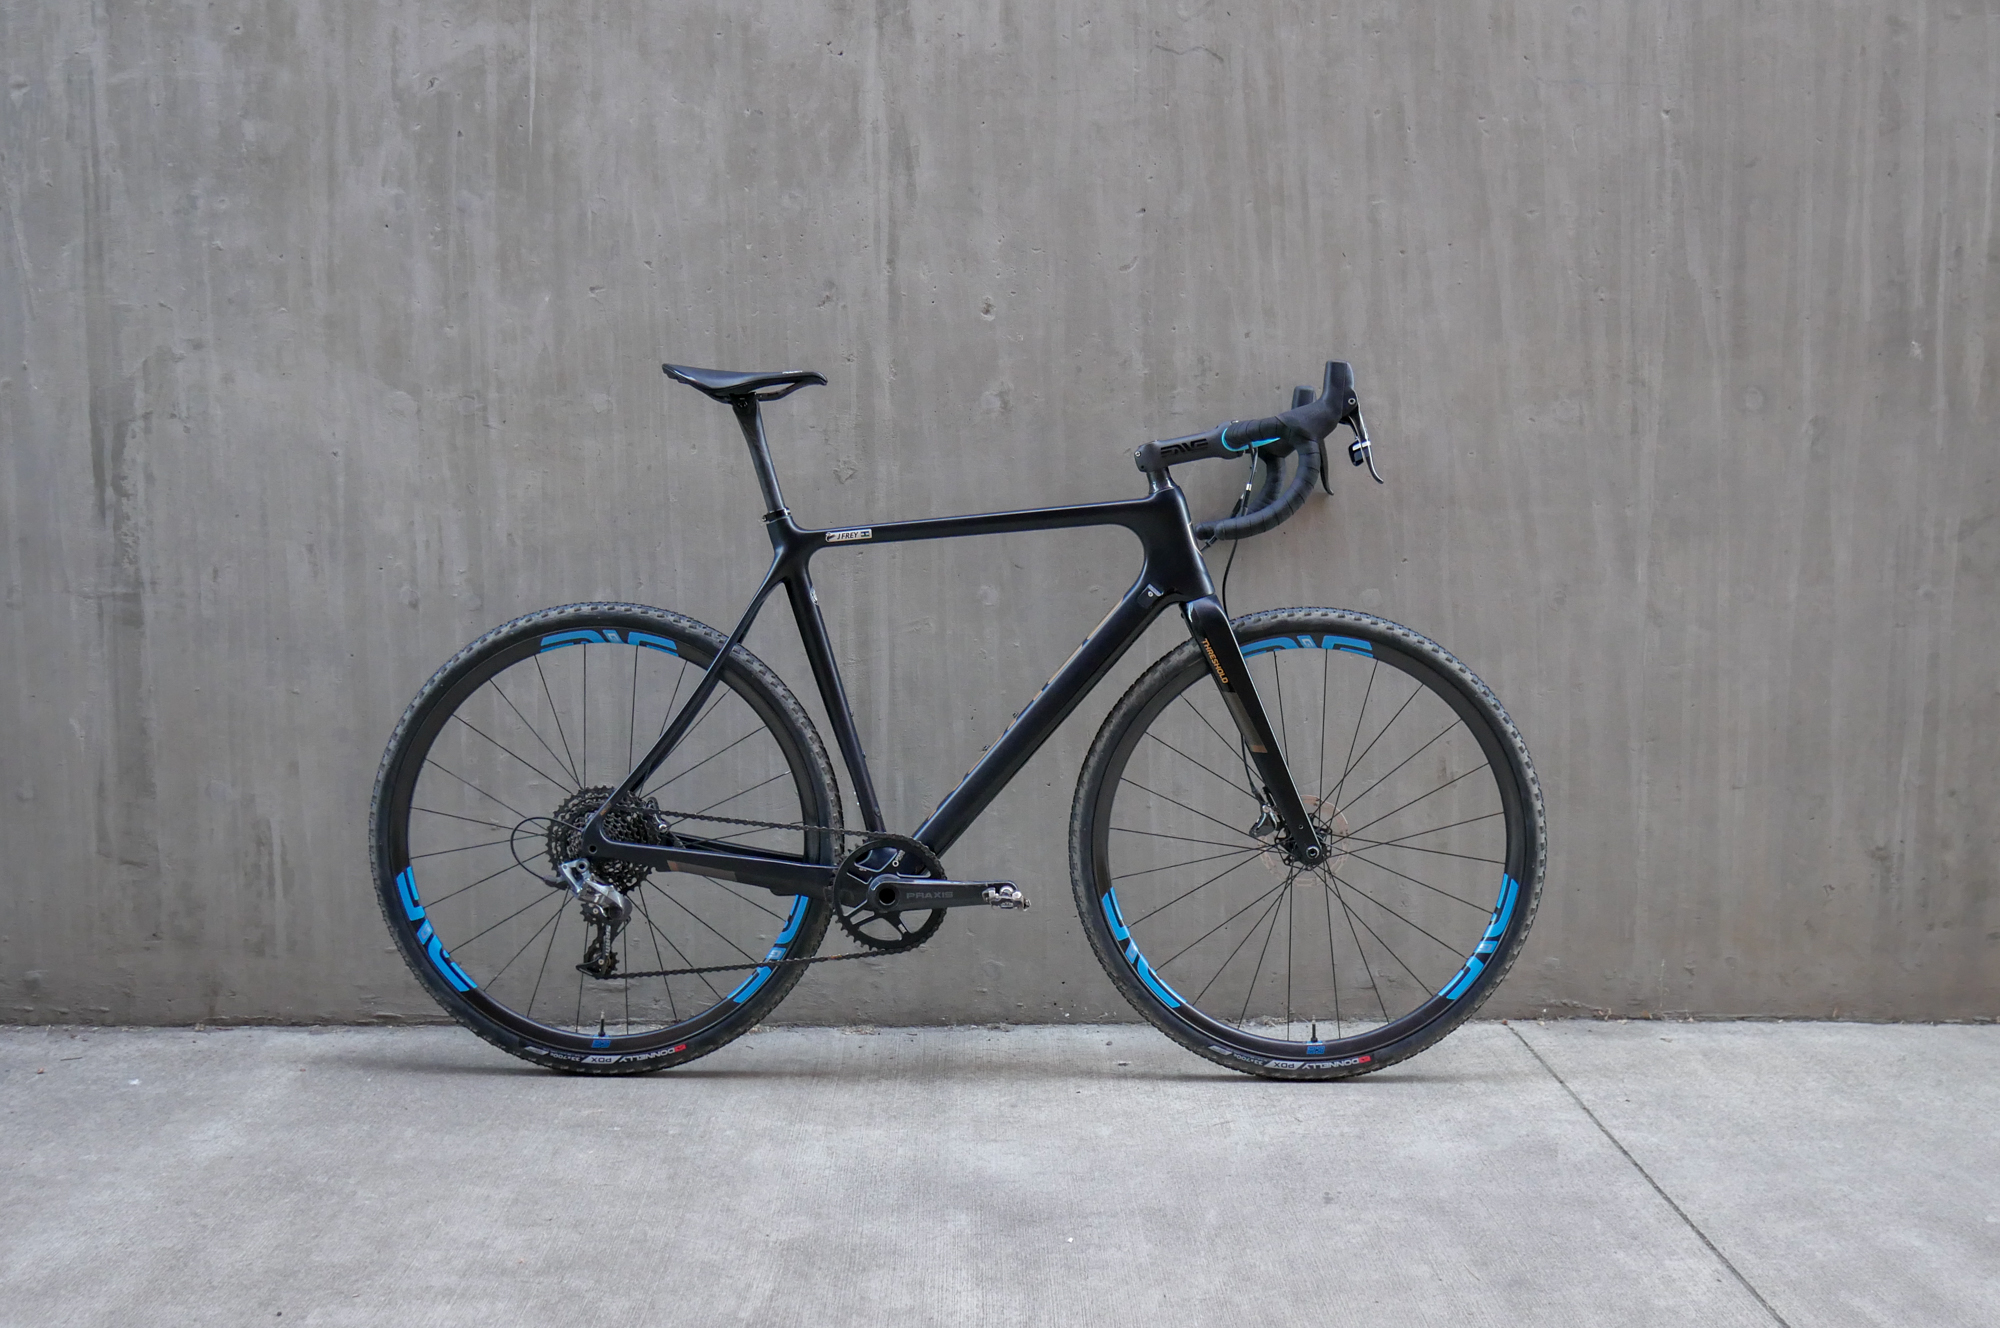 2019 Norco Threshold carbon